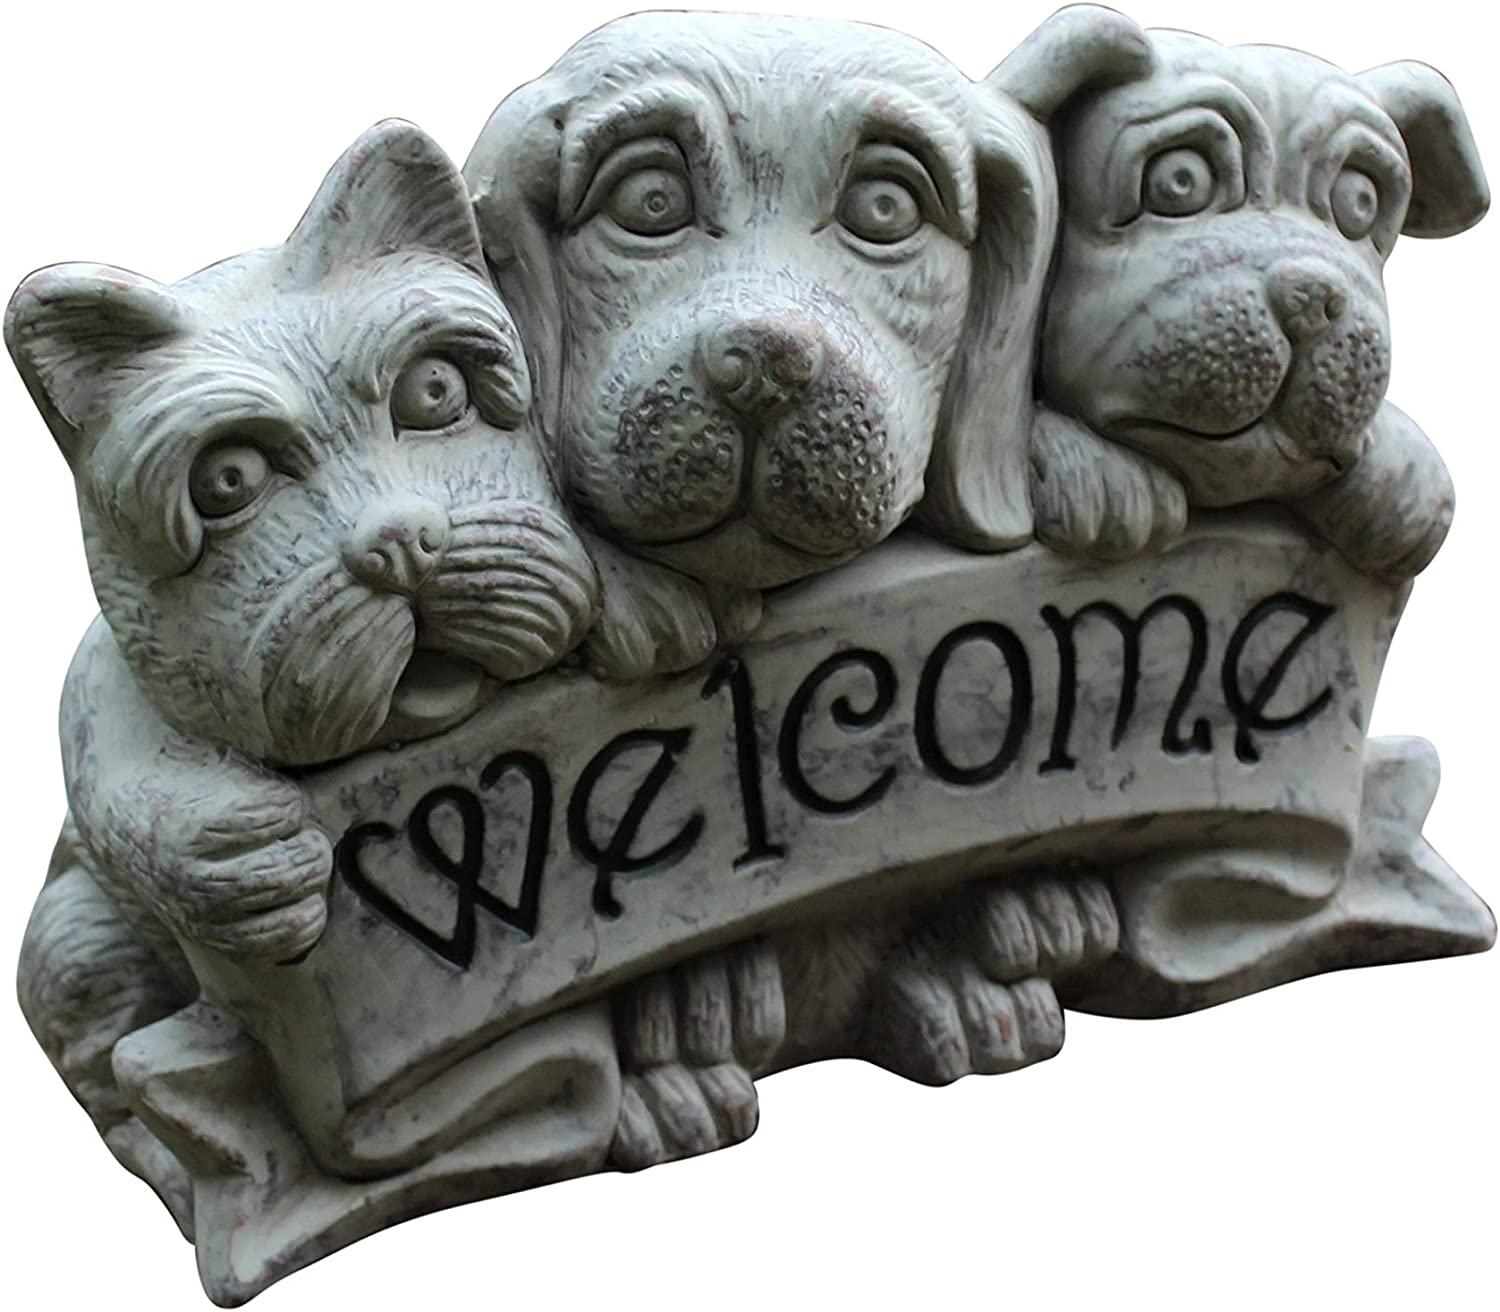 Garden Ornament Puppy Dog Decor Welcome Sign Outdoor Statue Home Amazon Co Uk Garden Outdoors